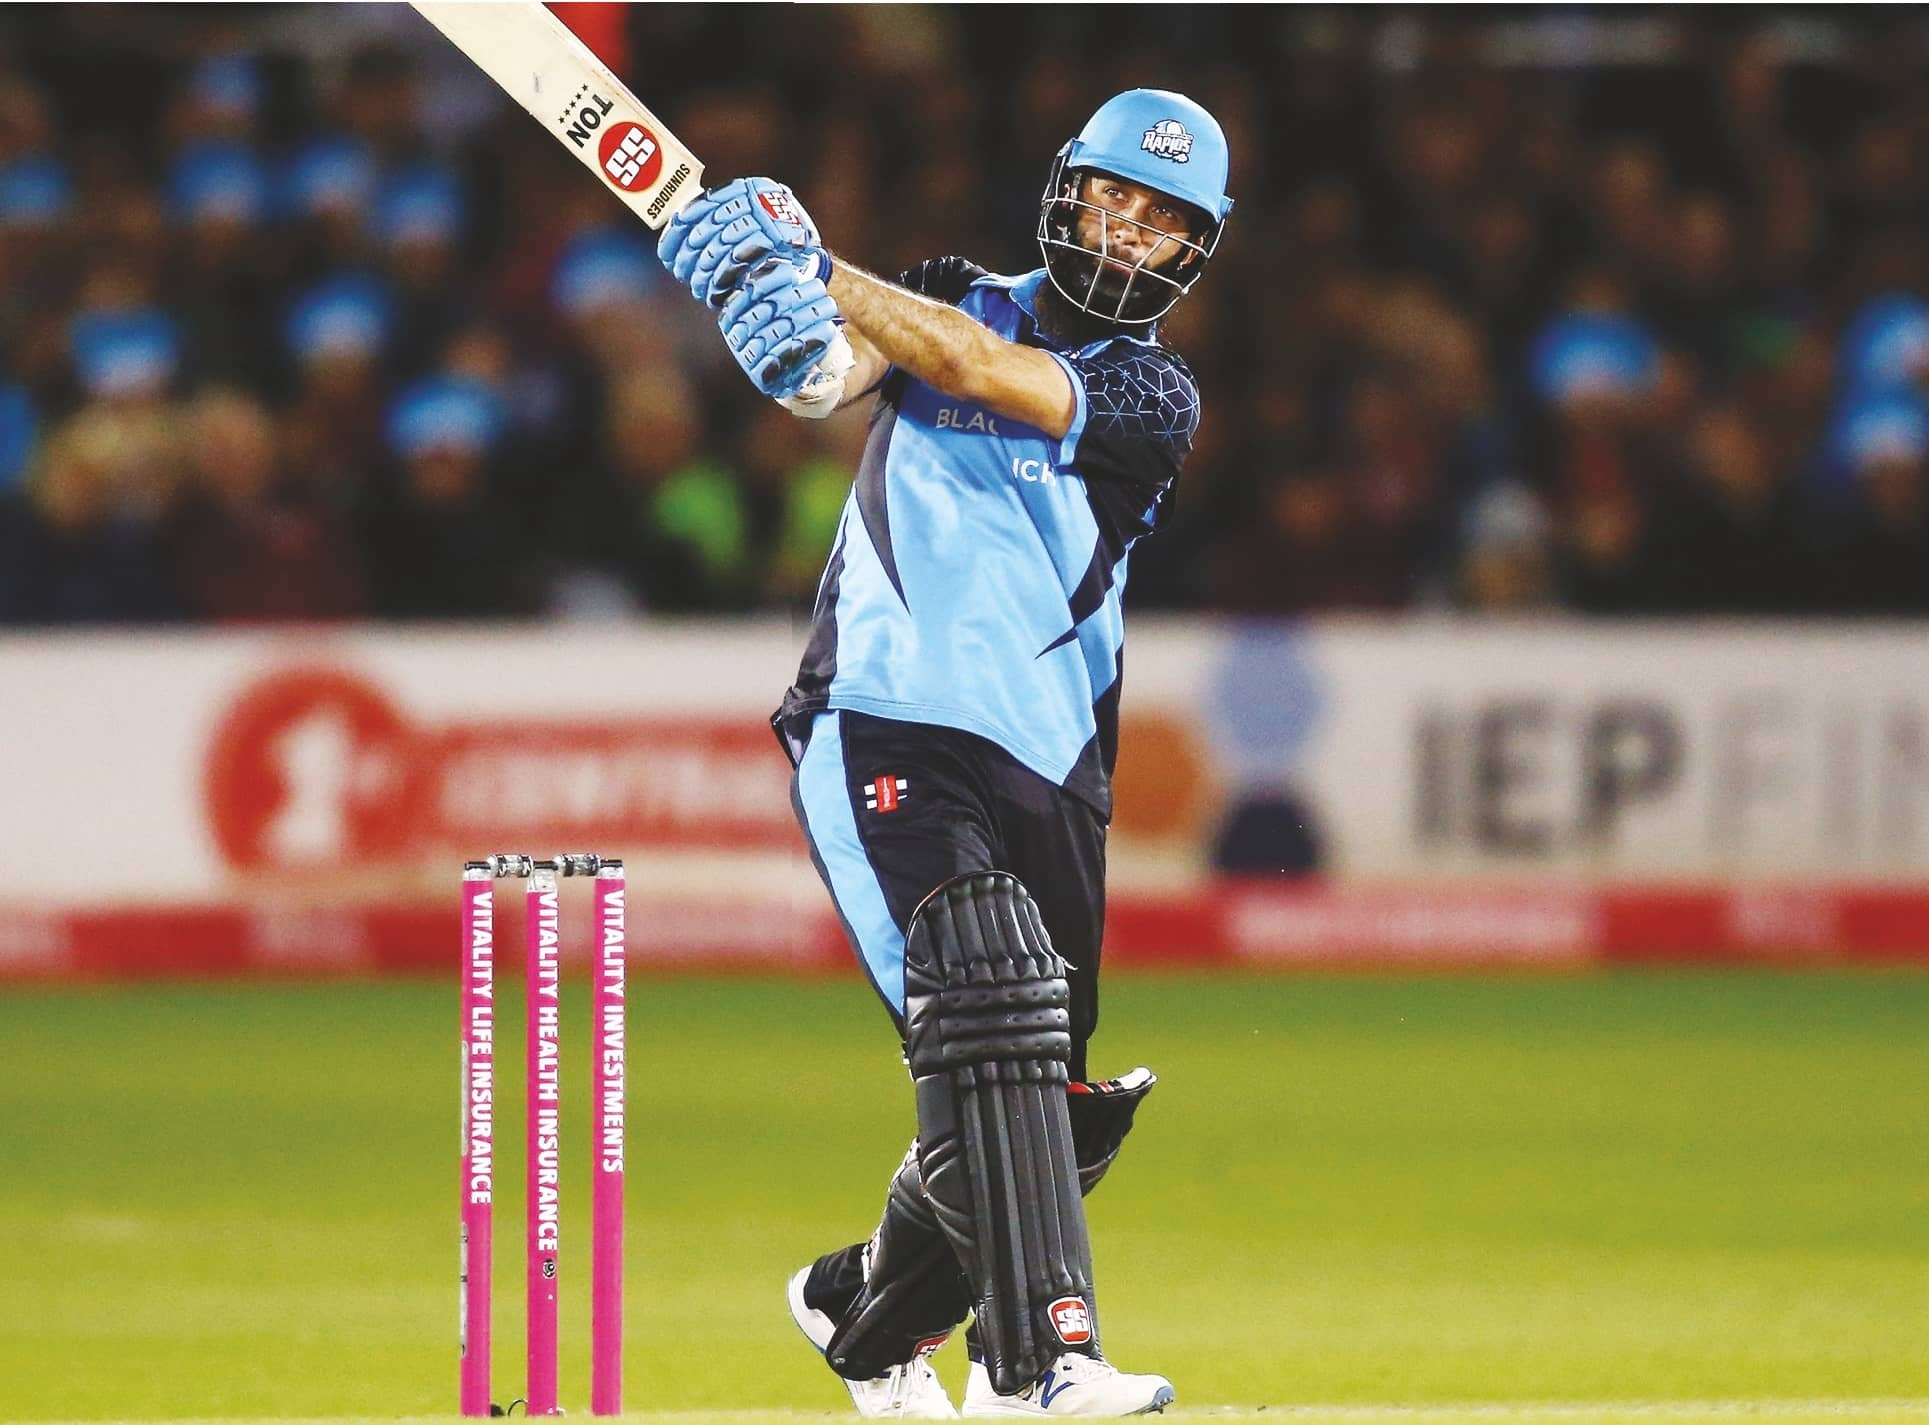 Moeen's A Marvel As Rapids Aim For Repeat